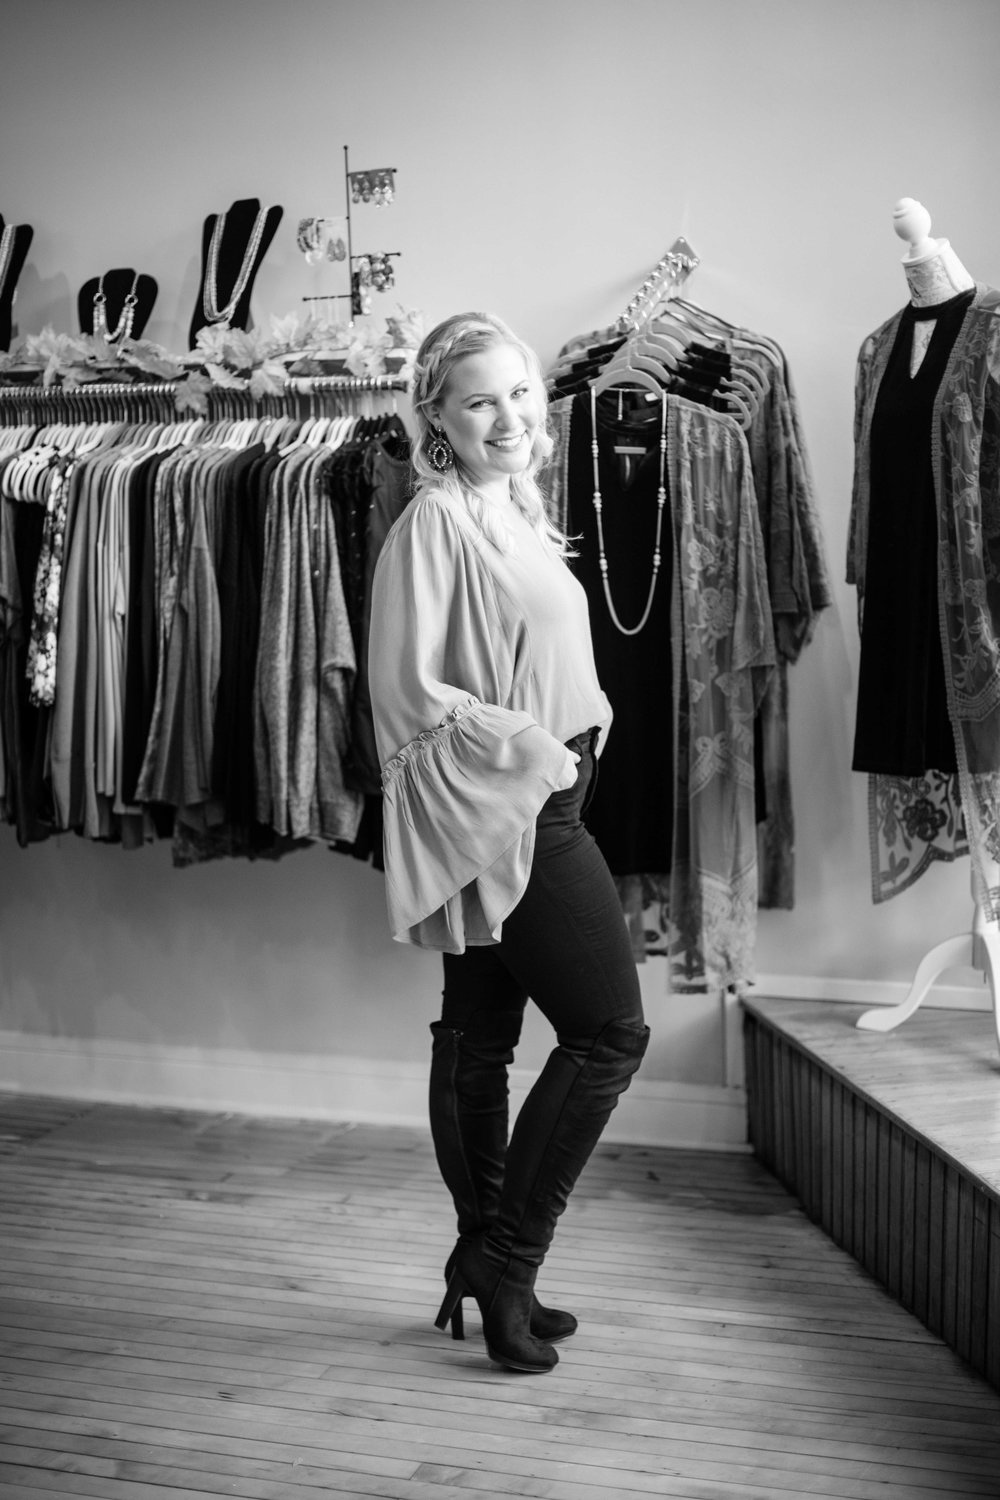 Lauren of The Colette Collection interviewed for Inspired Chicago series